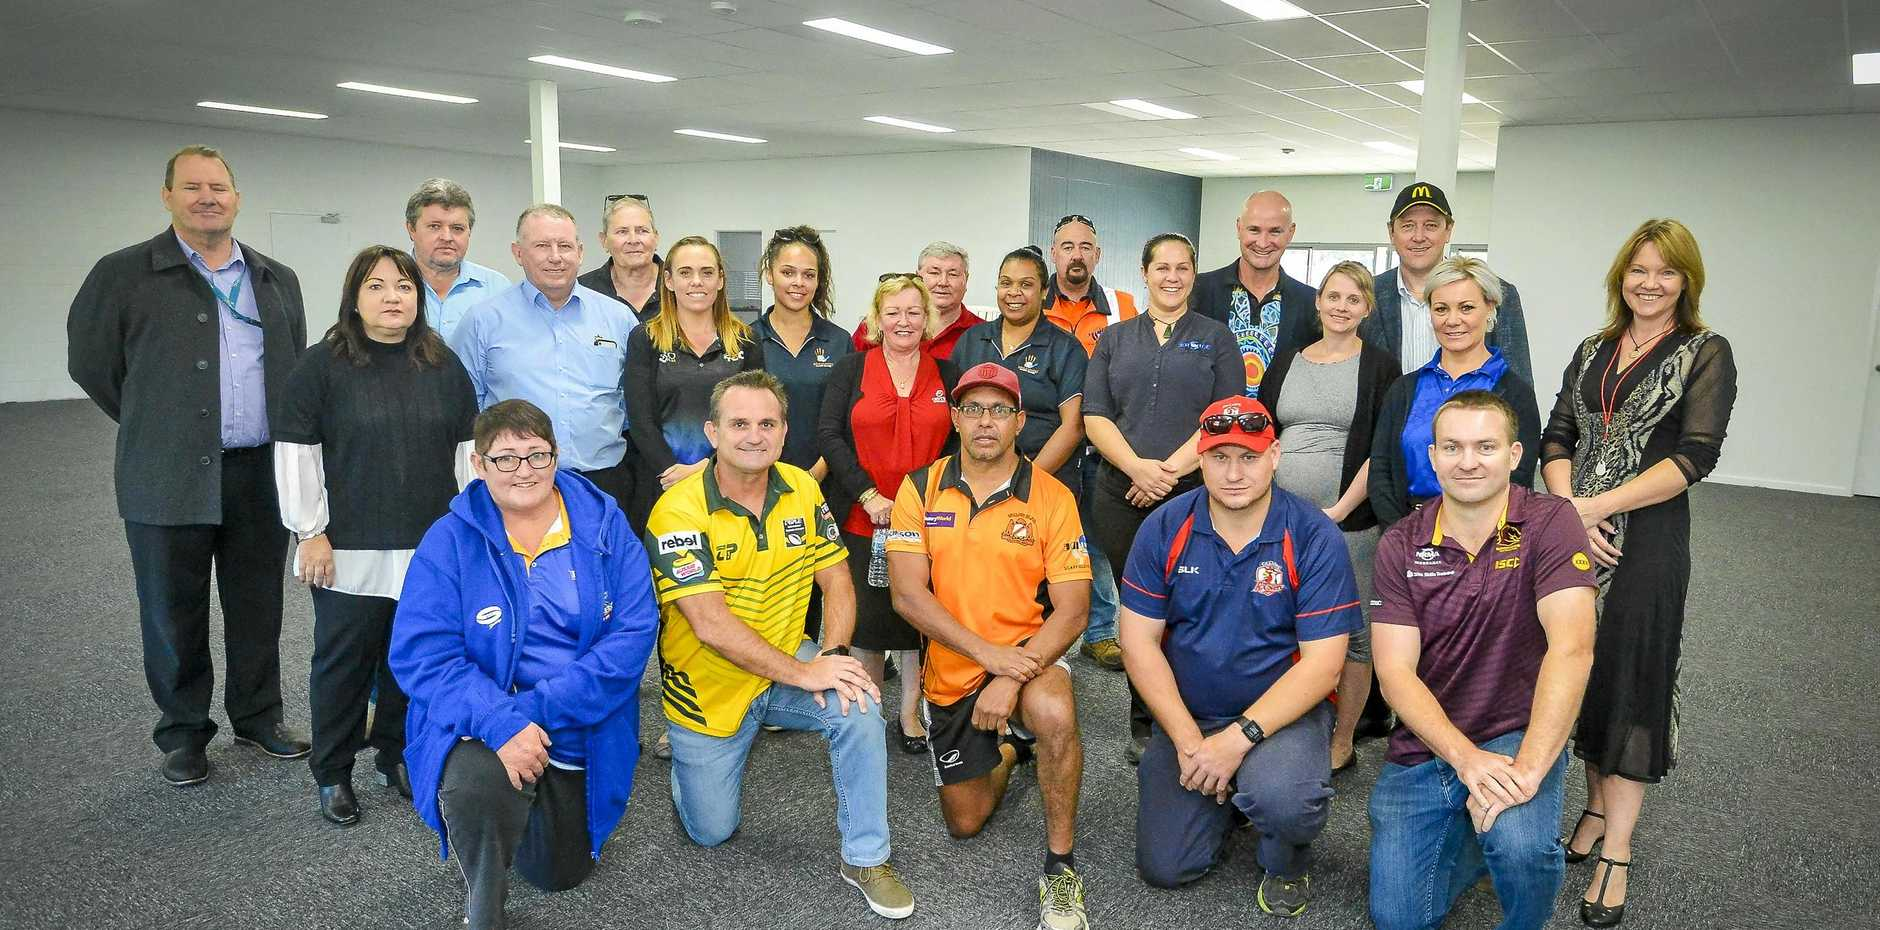 ACTION-PACKED: Sponsors of the Legends of League event to be held in Gladstone gather for the launch at Marley Brown Oval.